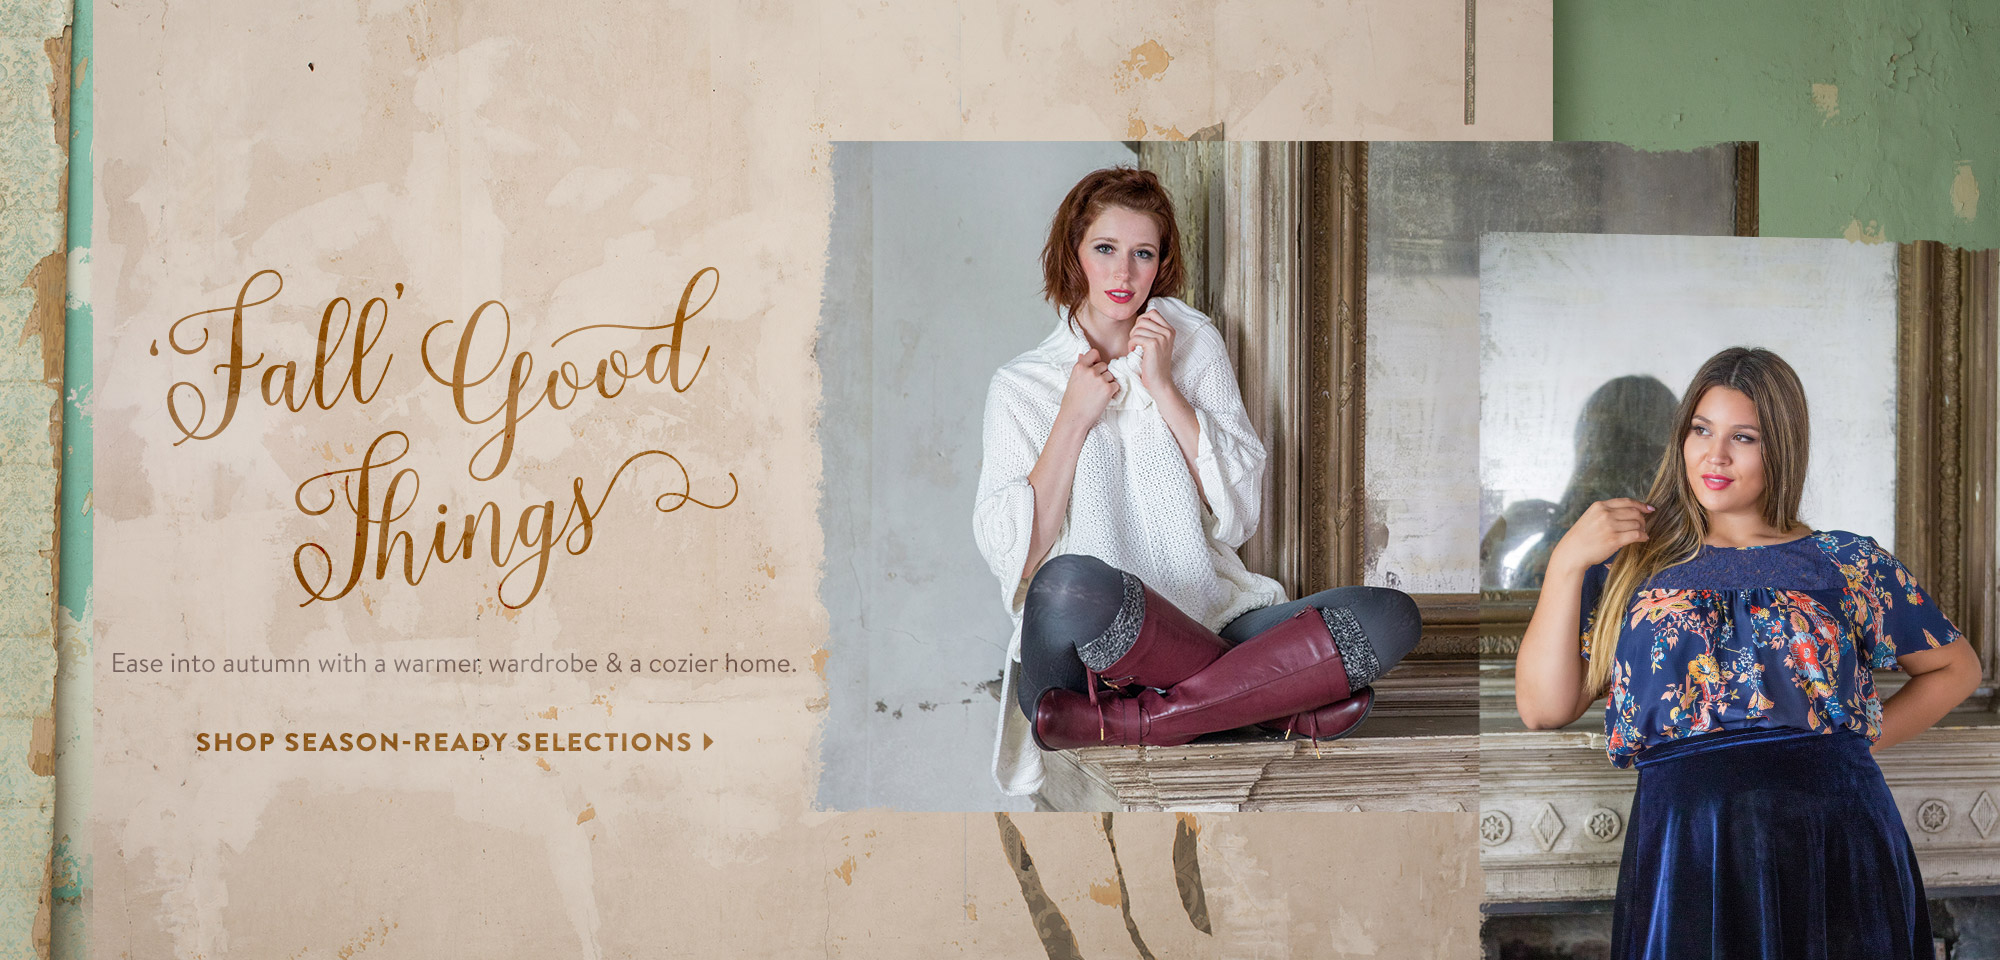 Fall Good Things. Ease into autumn with a warmer wardrobe and a cozier home. Shop Season-Ready Selections.